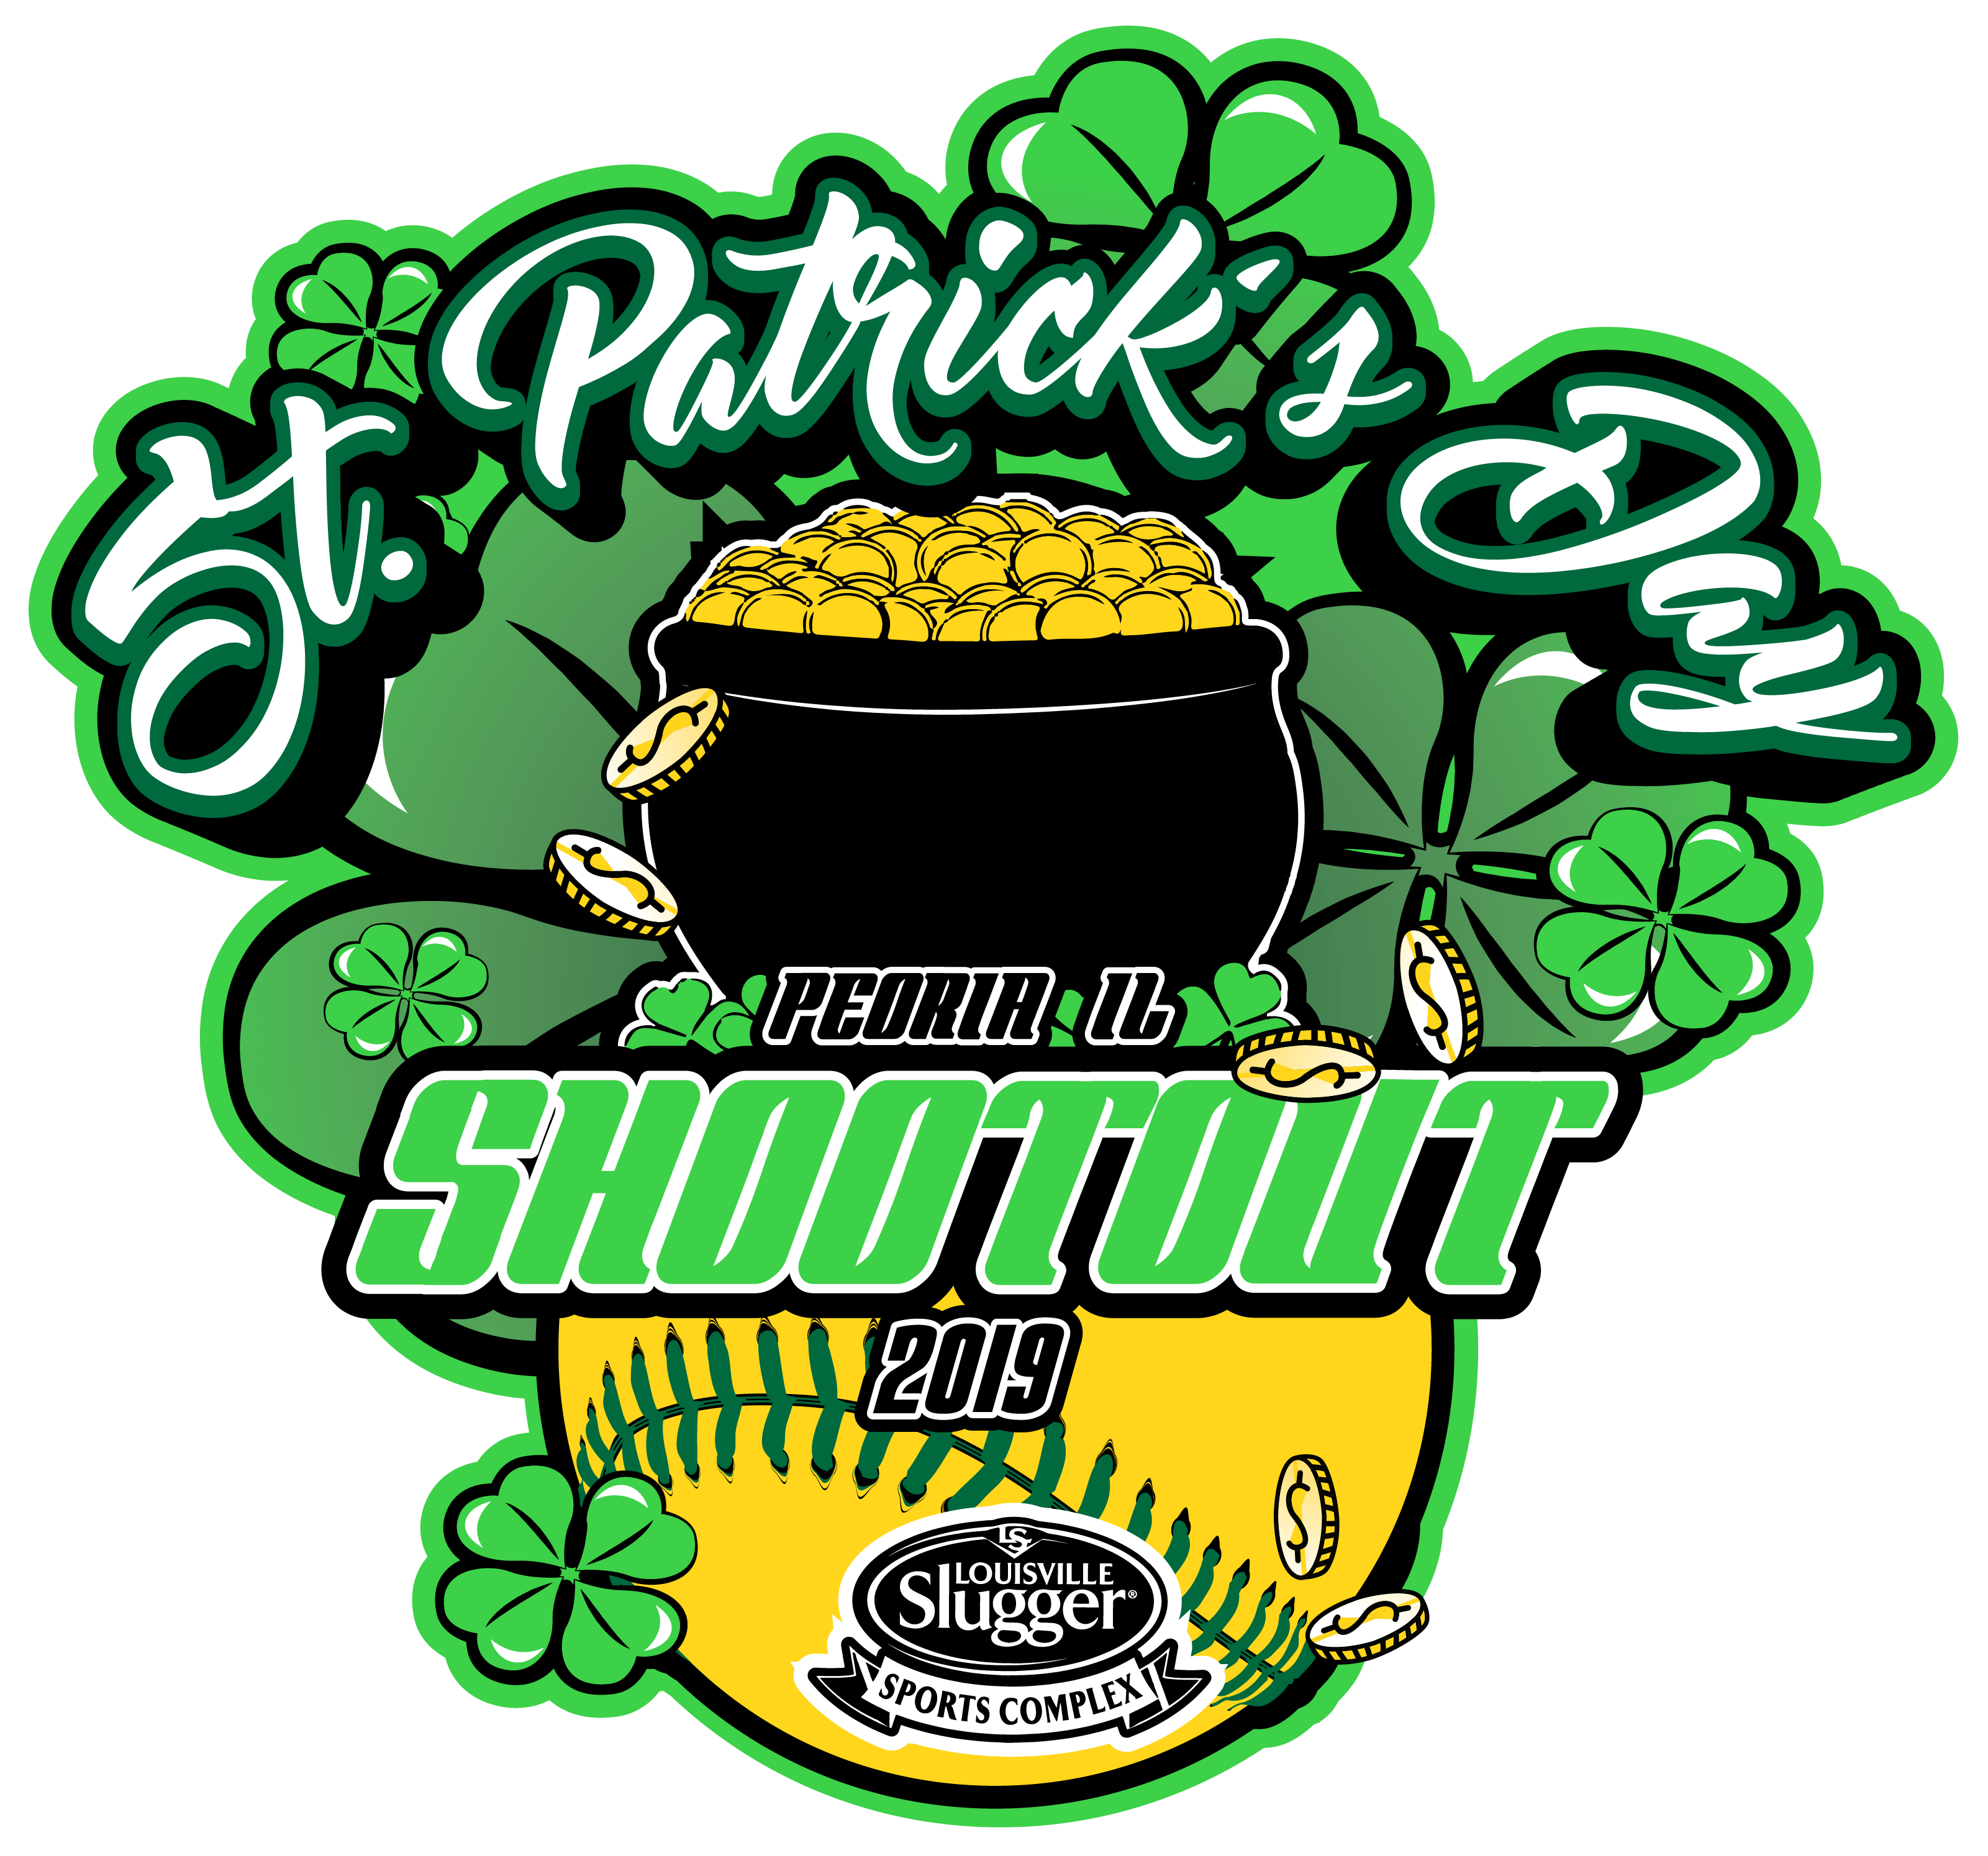 St. Patrick's Day Shootout